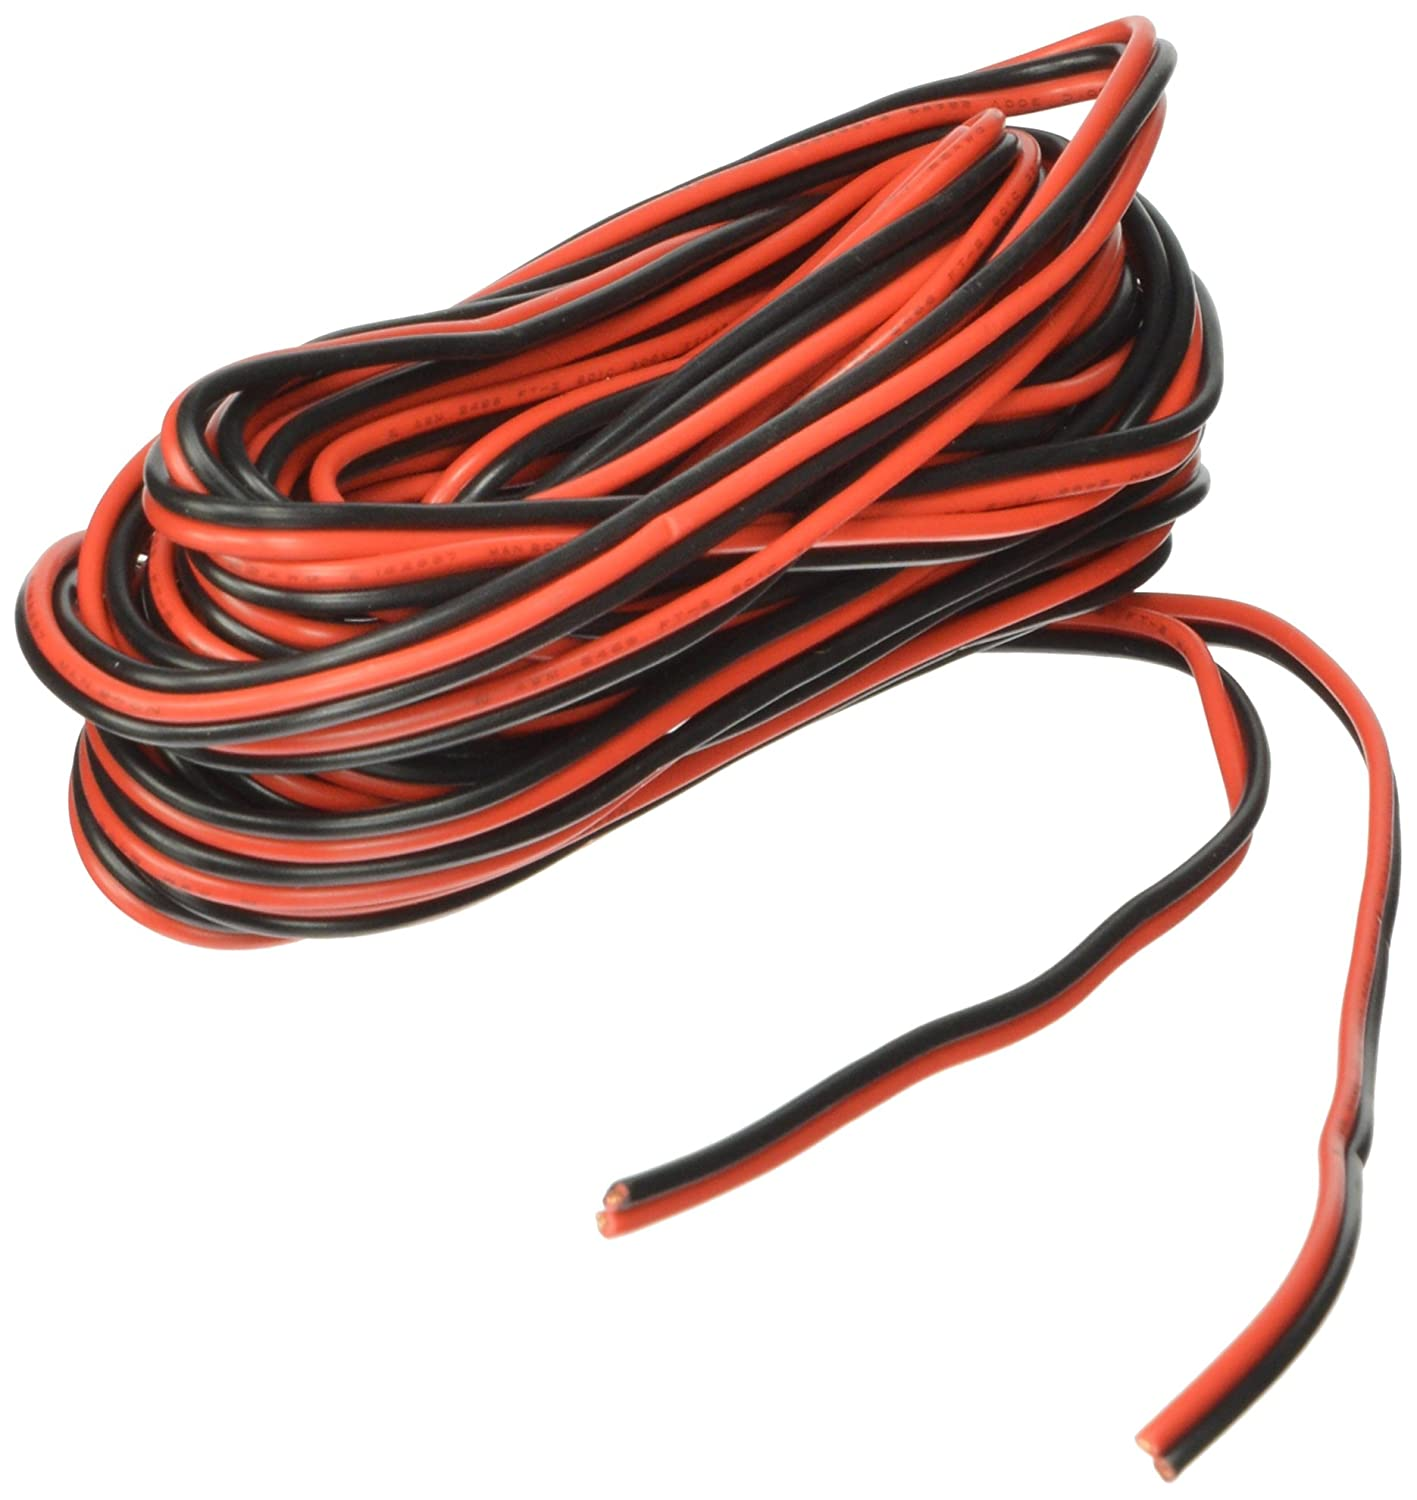 Amazon.com: RoadPro – 25\' Hardwire Replacement 2 Wire 22-Gauge ...